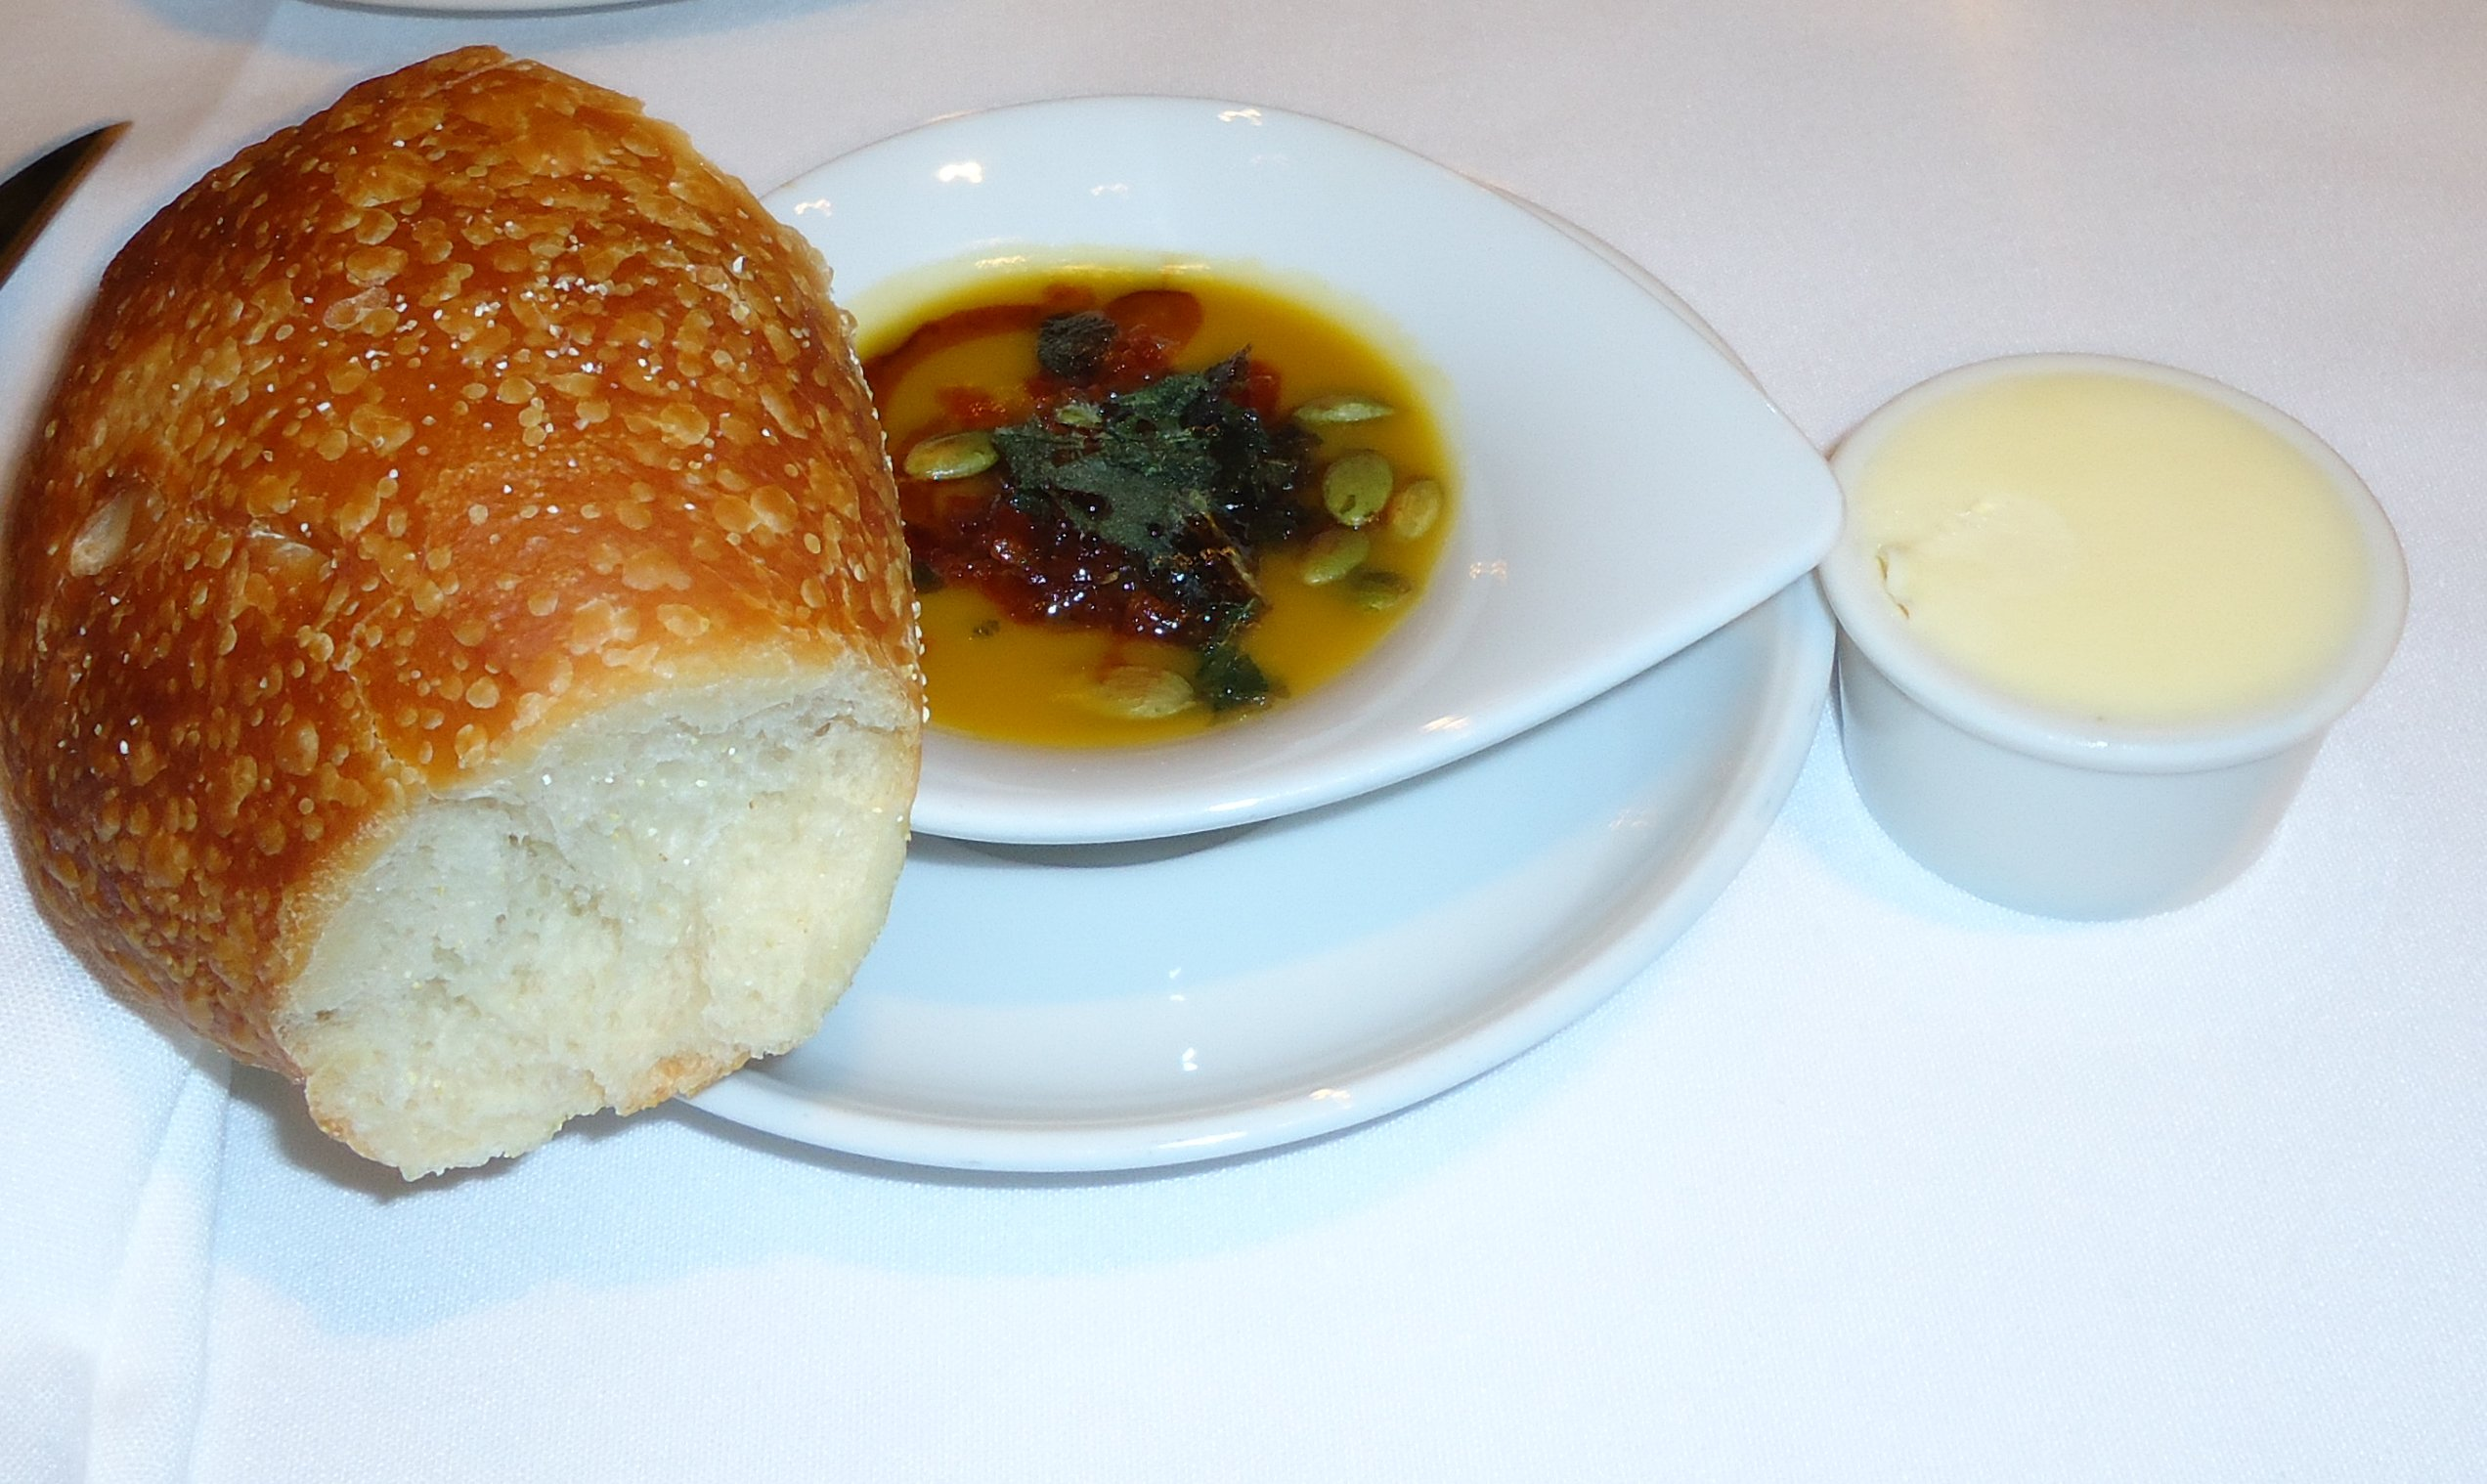 Bread, soup, and butter.